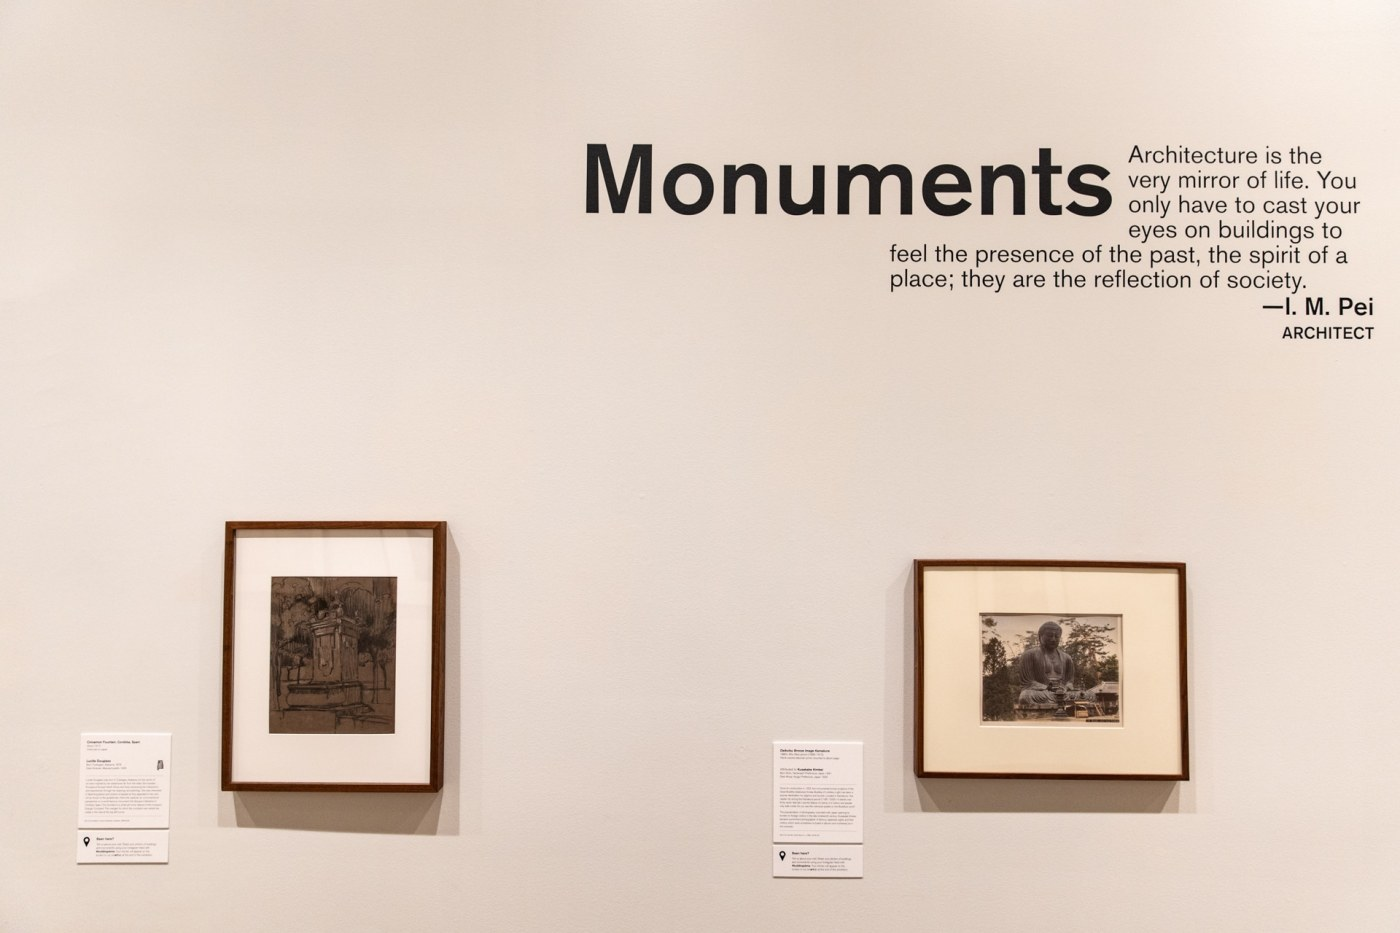 Monuments - Ways of Seeing